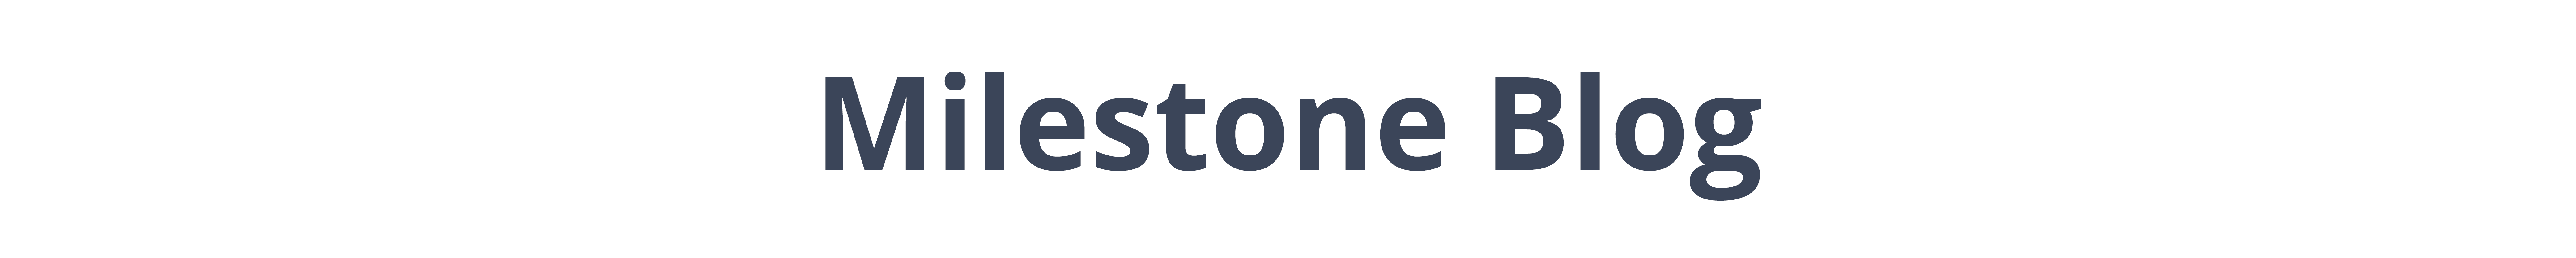 Milestone magazine logo at Bridgeport Place Assisted Living in University Place, Washington